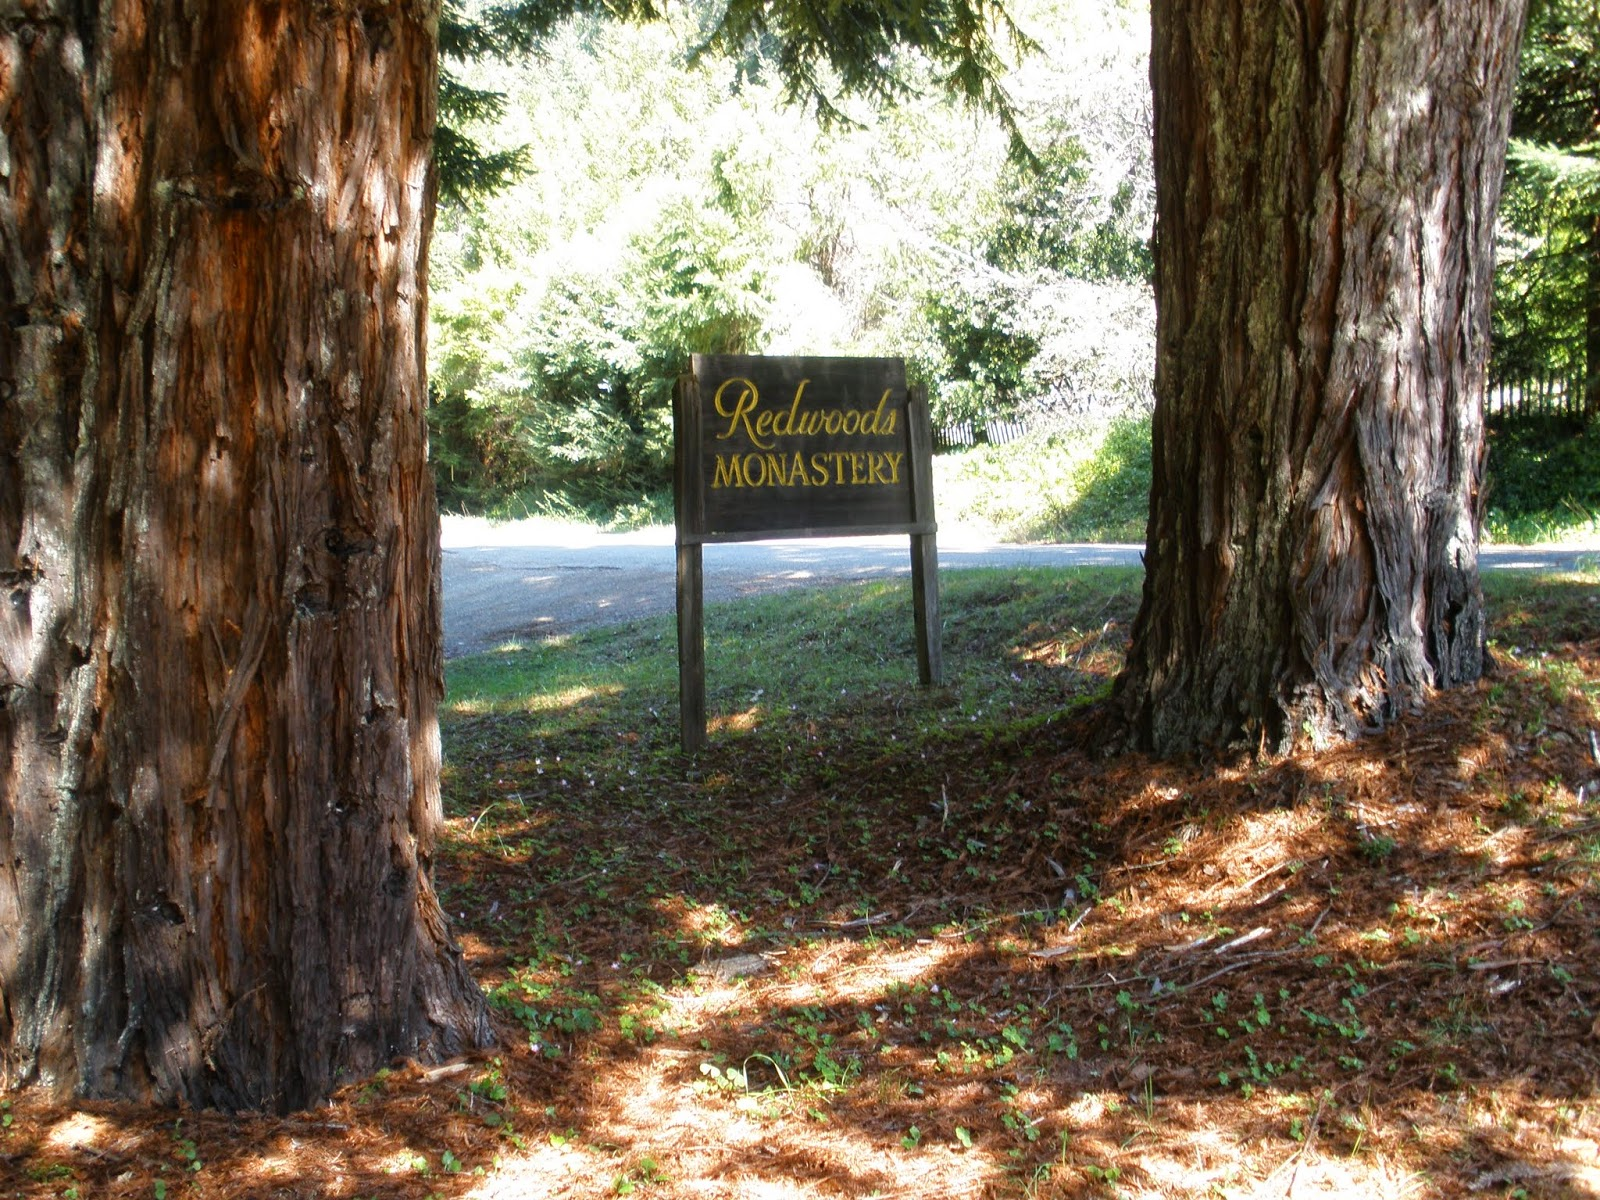 Following the Monastic Path at Redwoods Monastery